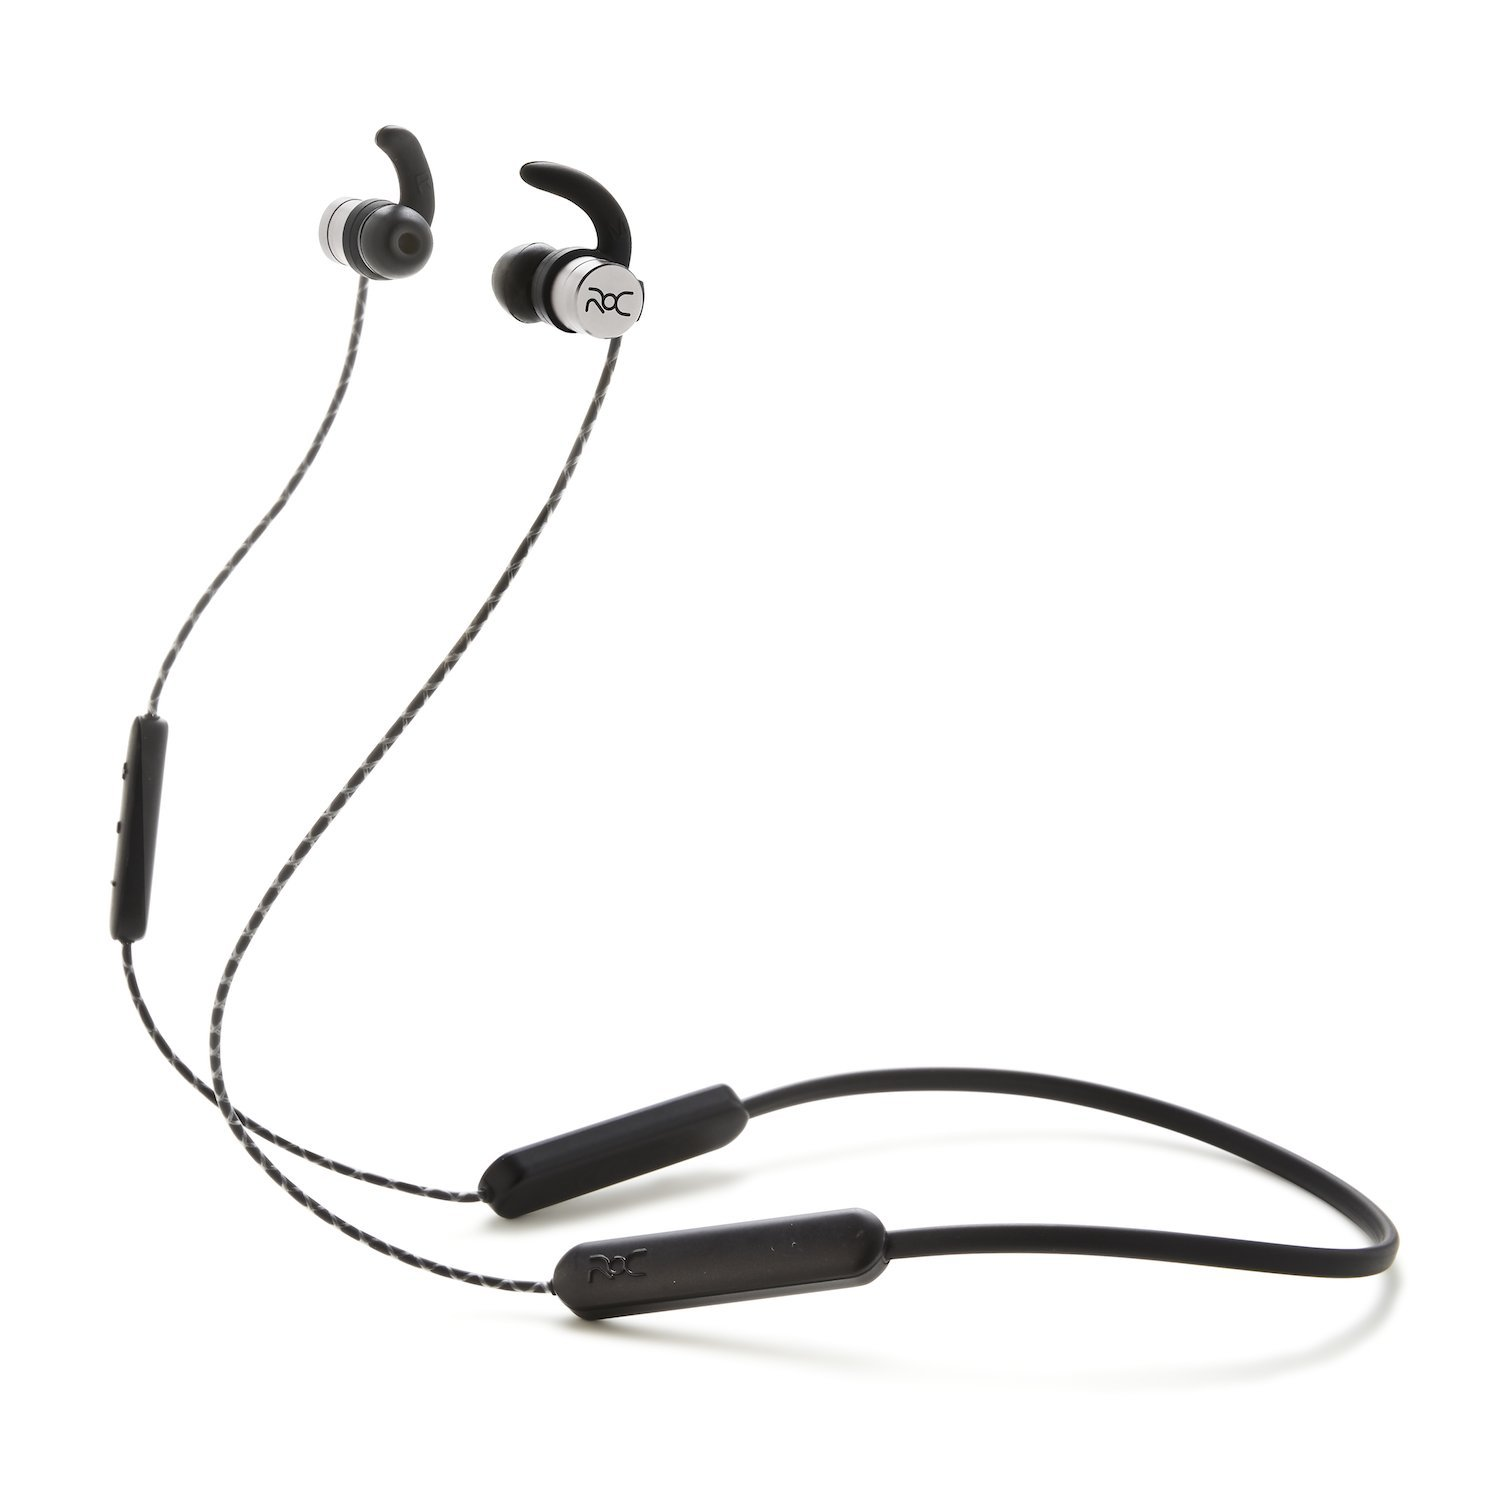 Headphones - Blowout Sale! Save up to 61% | MT Global